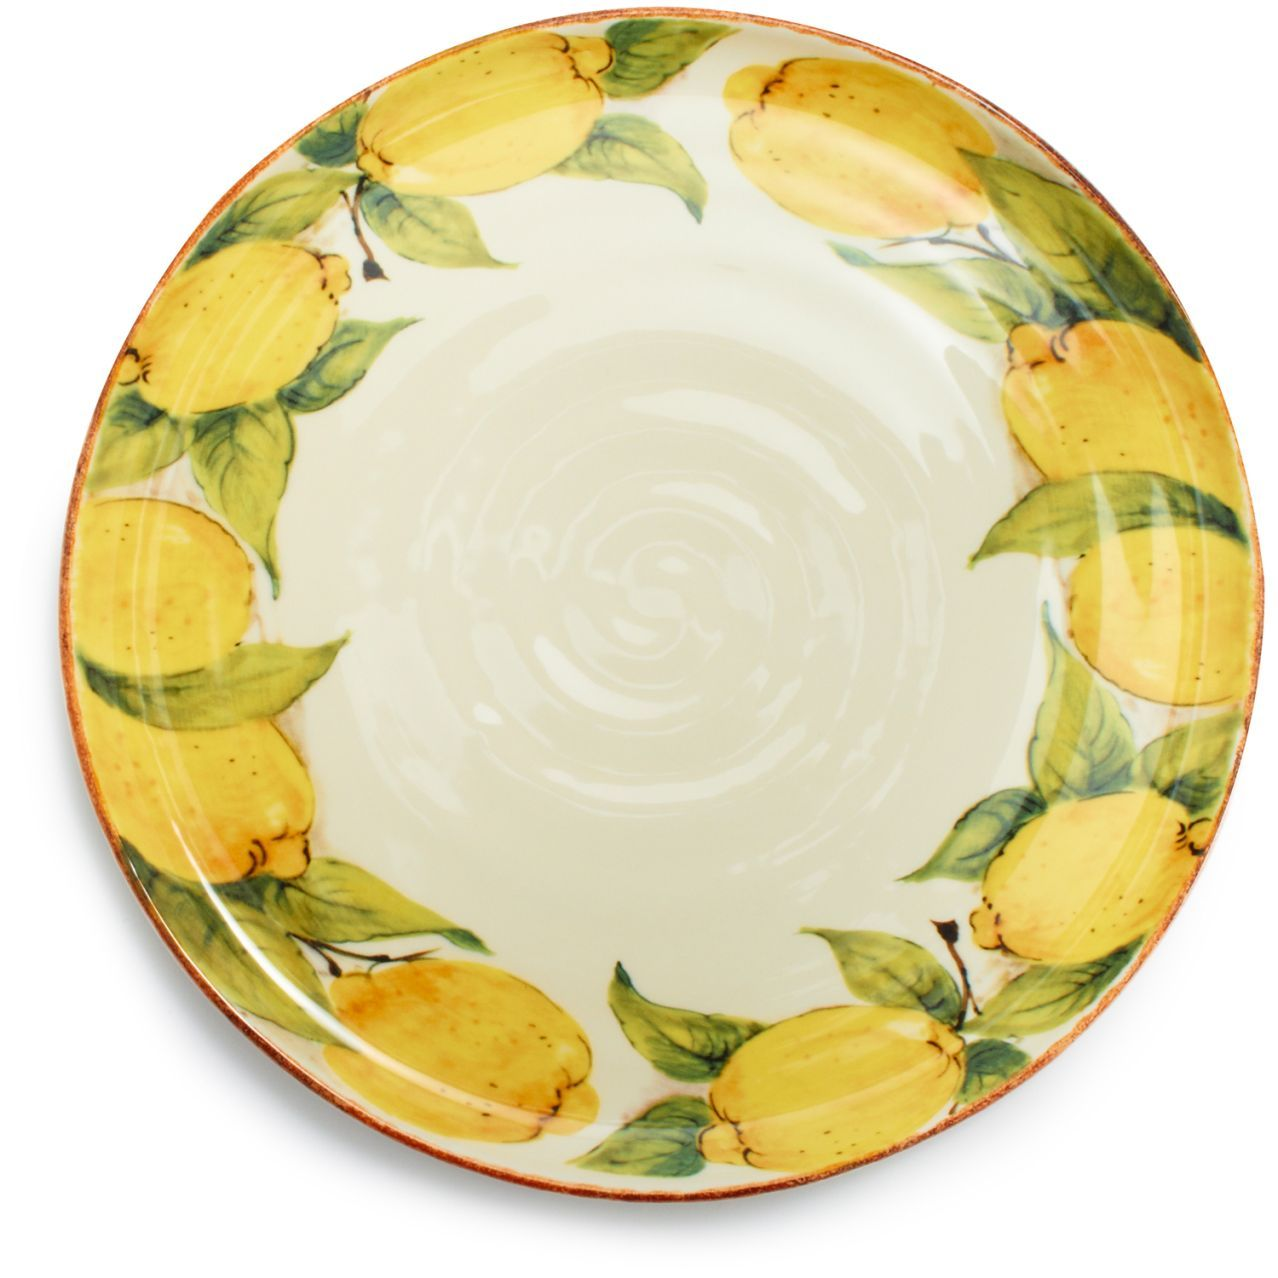 Lemon Collection Dinner Plate Sur La Table So Pretty